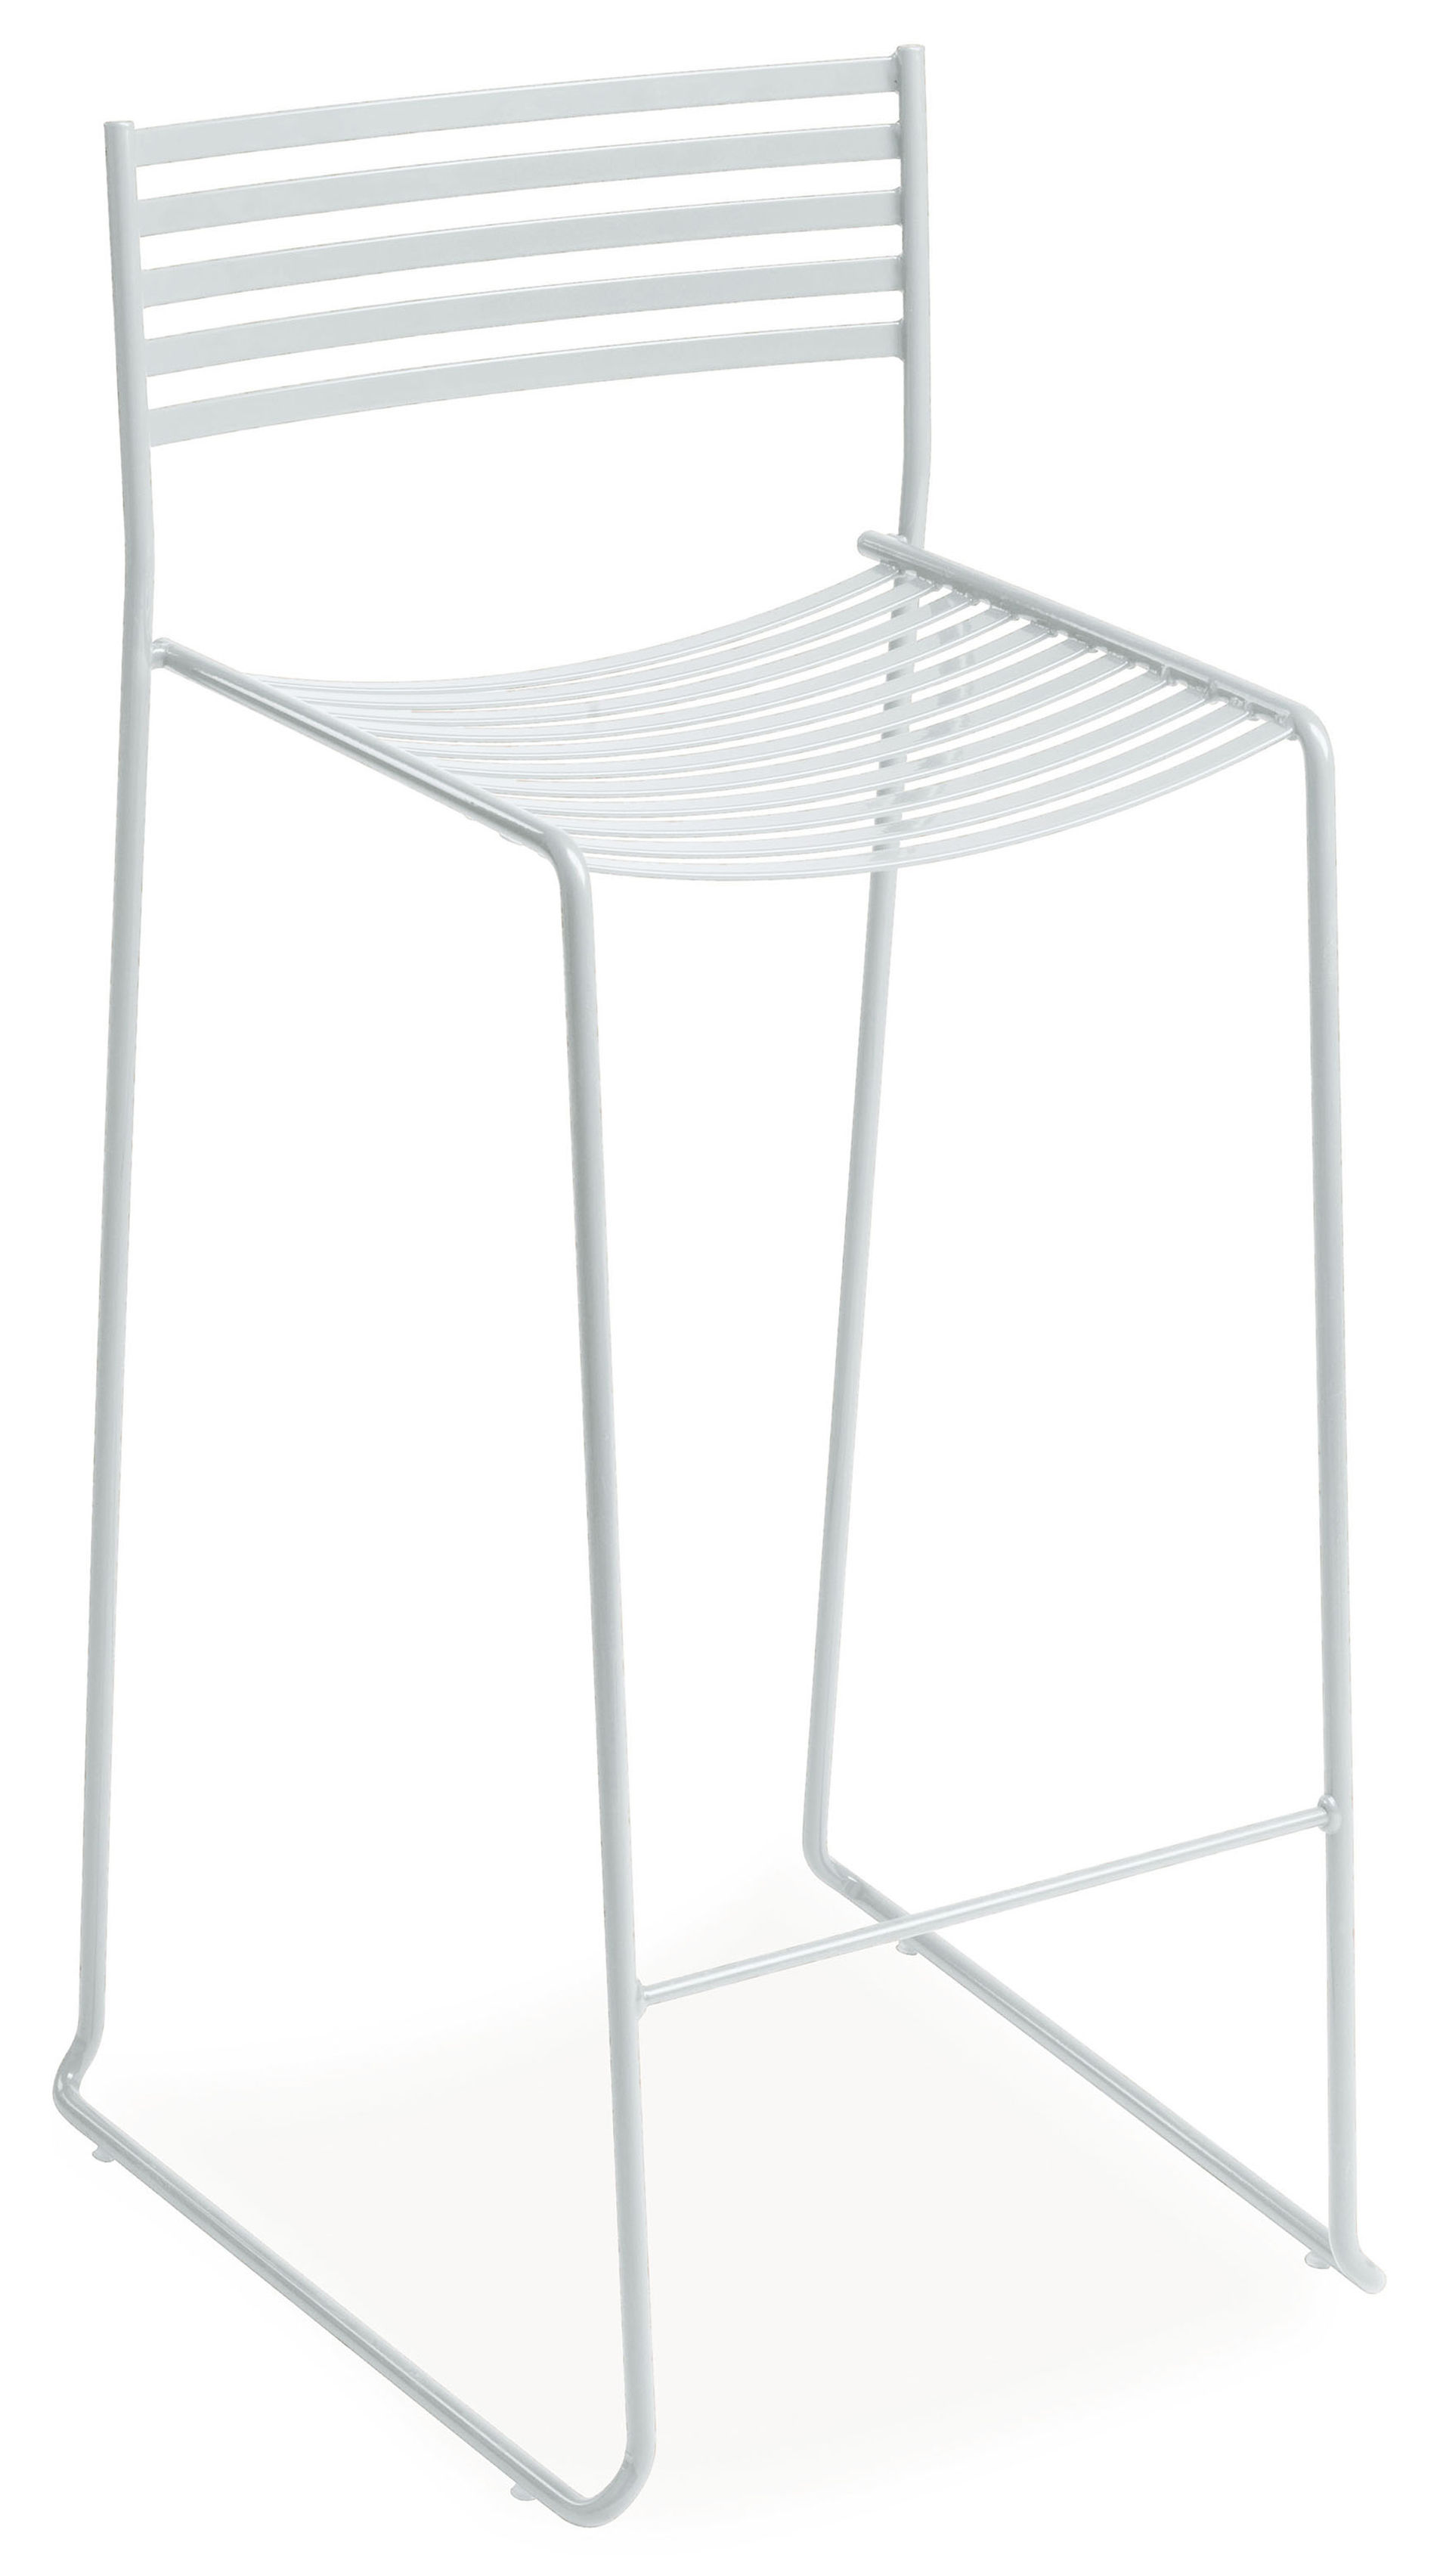 Furniture - Bar Stools - Aero Bar chair - H 64 cm - Metal by Emu - White - Lacquered steel